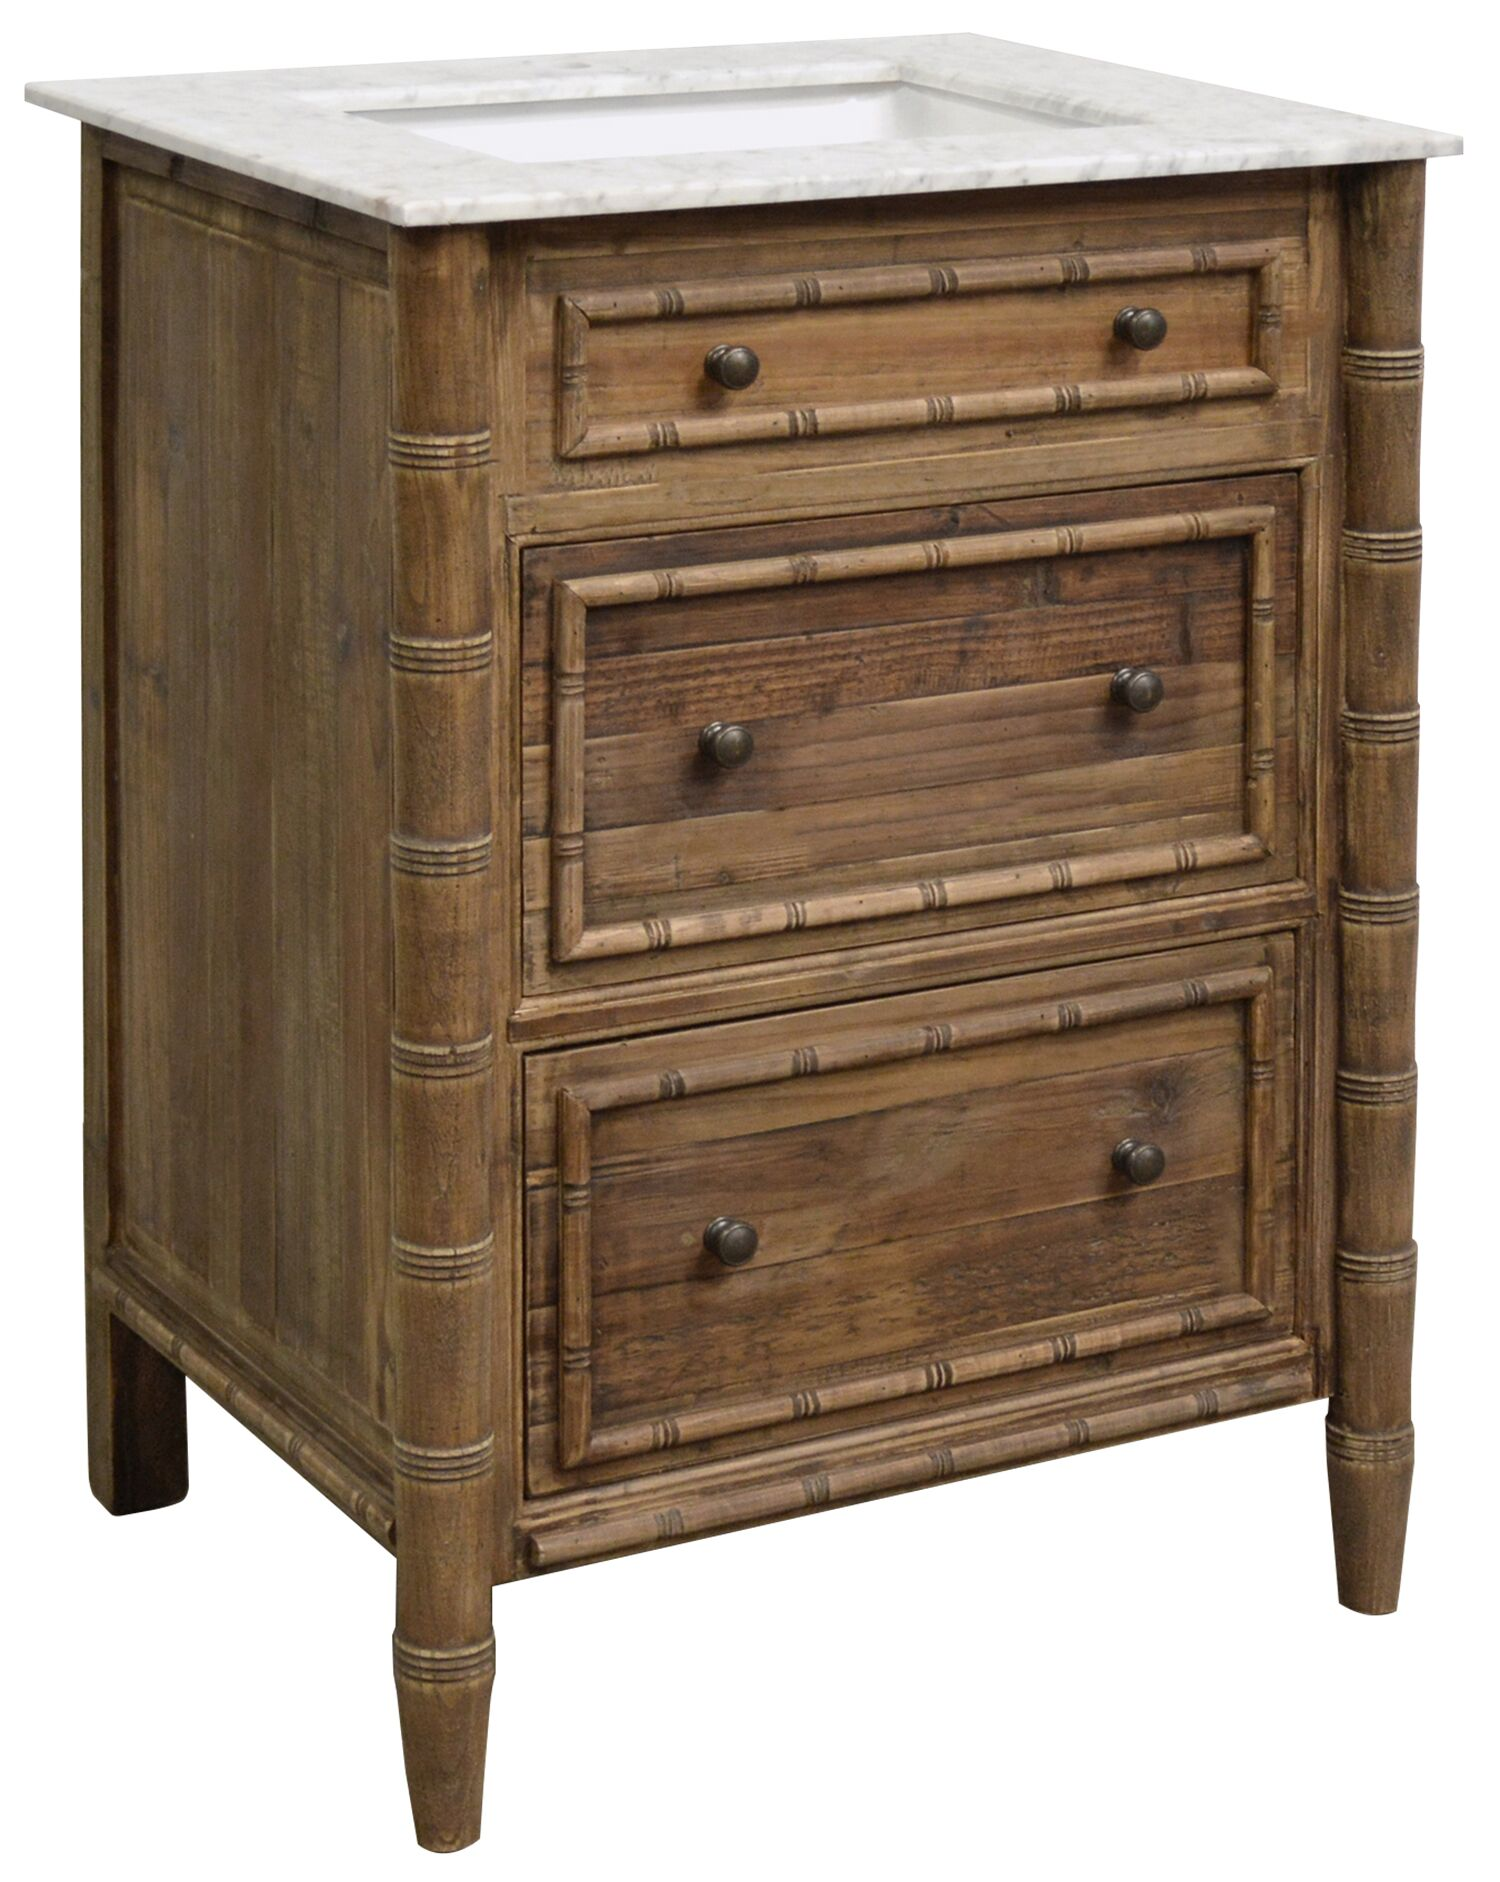 "26.5"" Handcrafted Reclaimed Pine Solid Wood Faux Bamboo Single Bath Vanity Wax Finish"